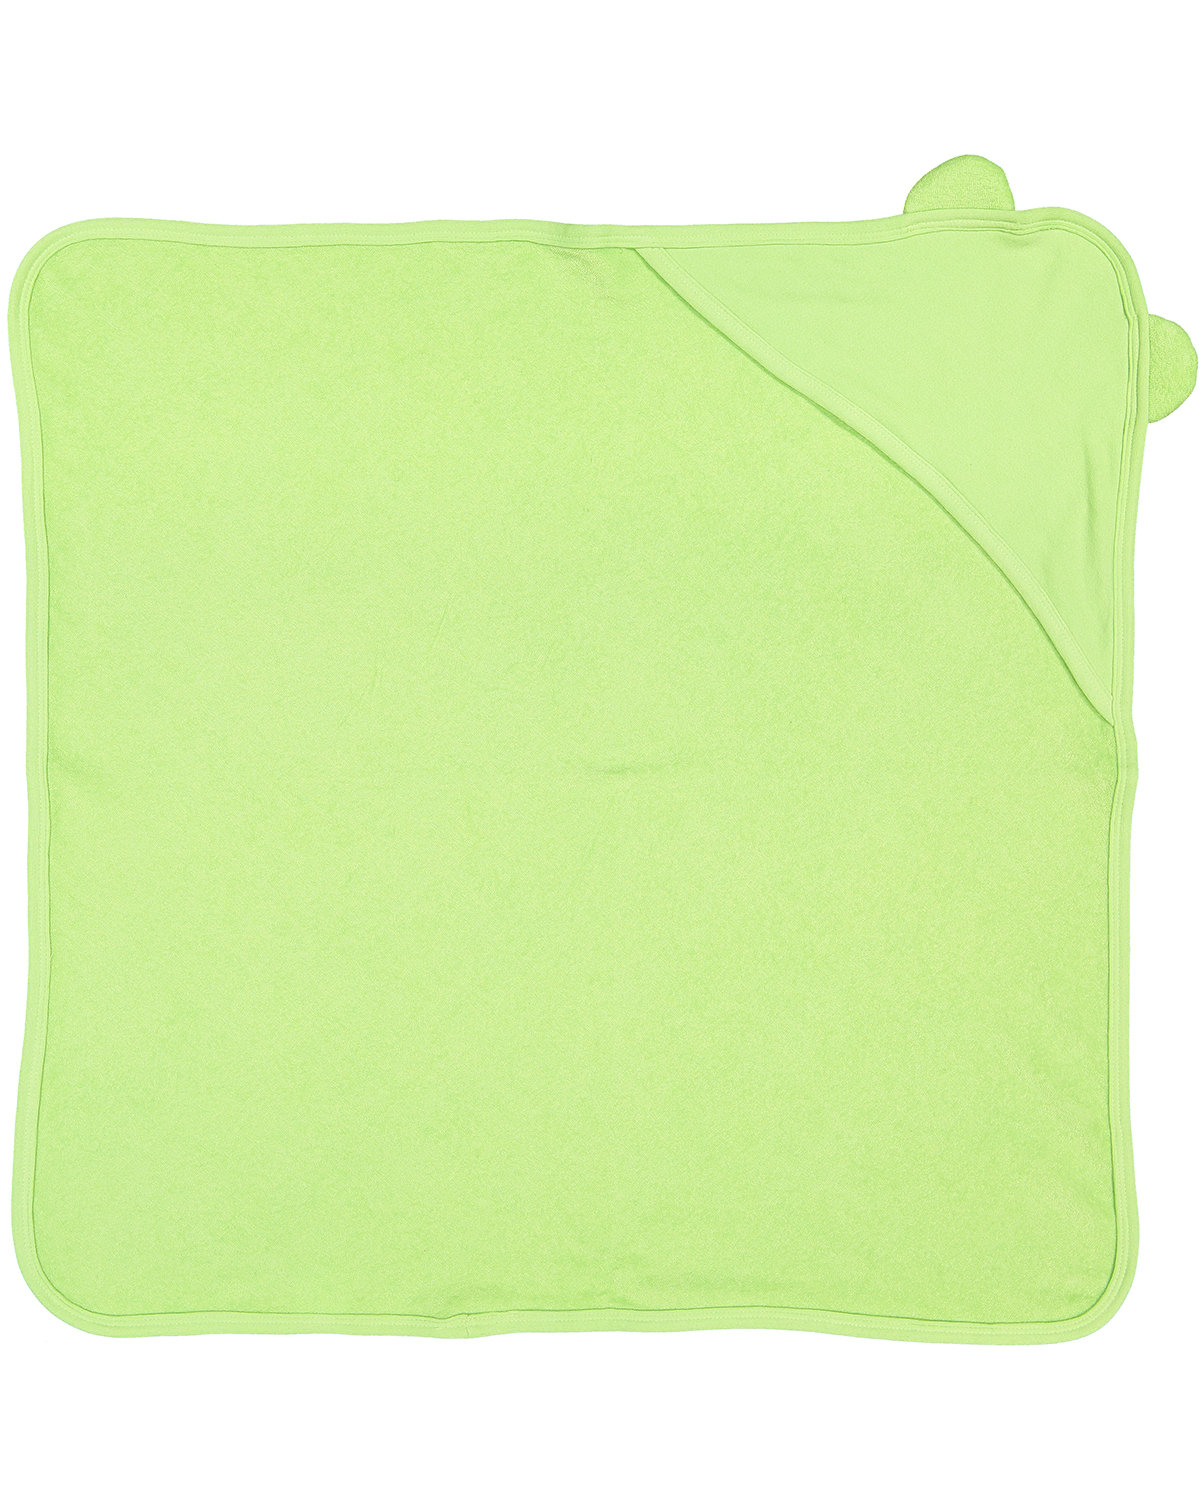 Rabbit Skins Infant Hooded Terry Cloth Towel With Ears KEY LIME